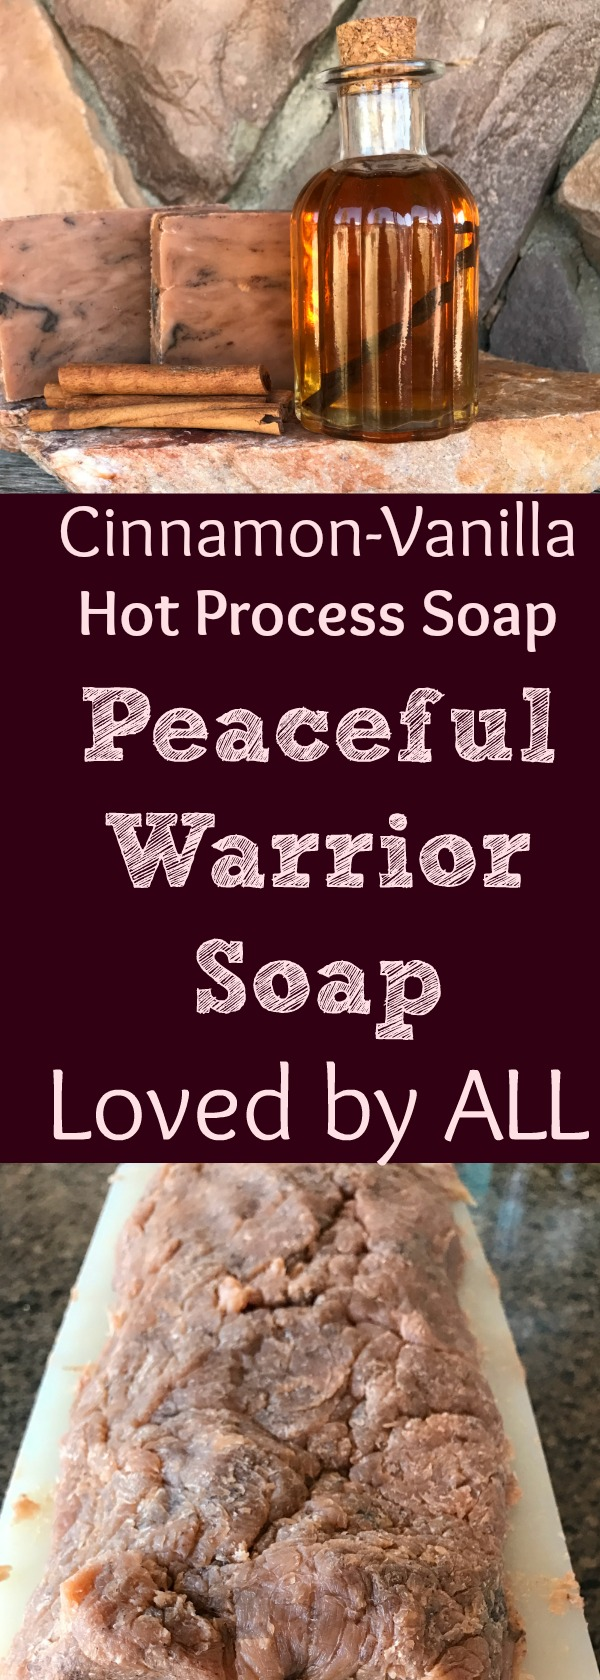 This is seriously one of my best-smelling soaps! Men love it. Women love it! It's just loved by everyone! Find out how to make this amazing hot process soap! This easy hot process soap tutorial makes the perfect handmade soap gifts…ever! #hotprocess #soaprecipe #cinnamonvanilla #tutorial #howtomake #handmade #soap #healingharvesthomestead